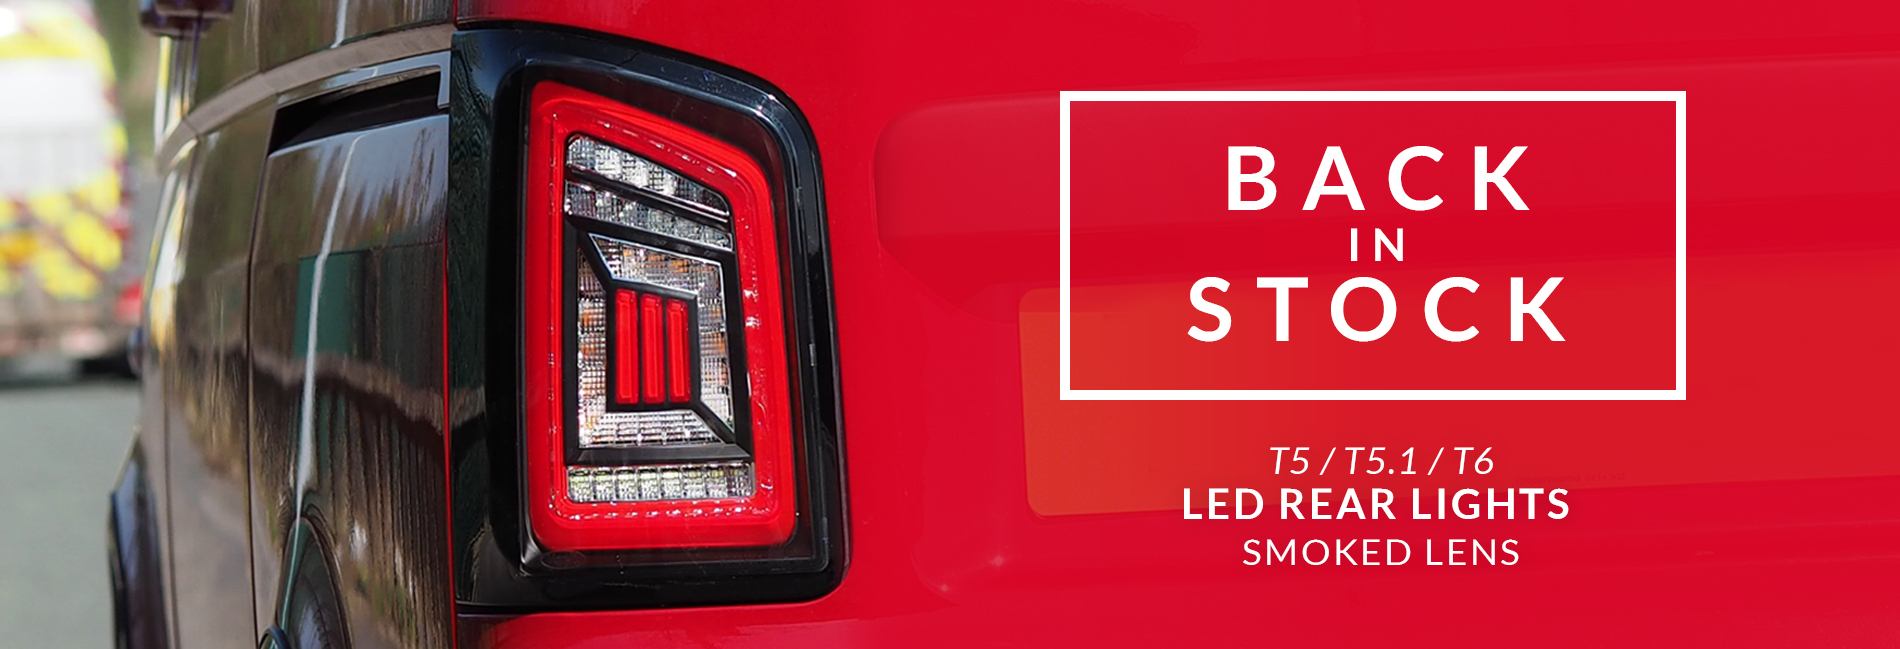 Back in stock LED lights